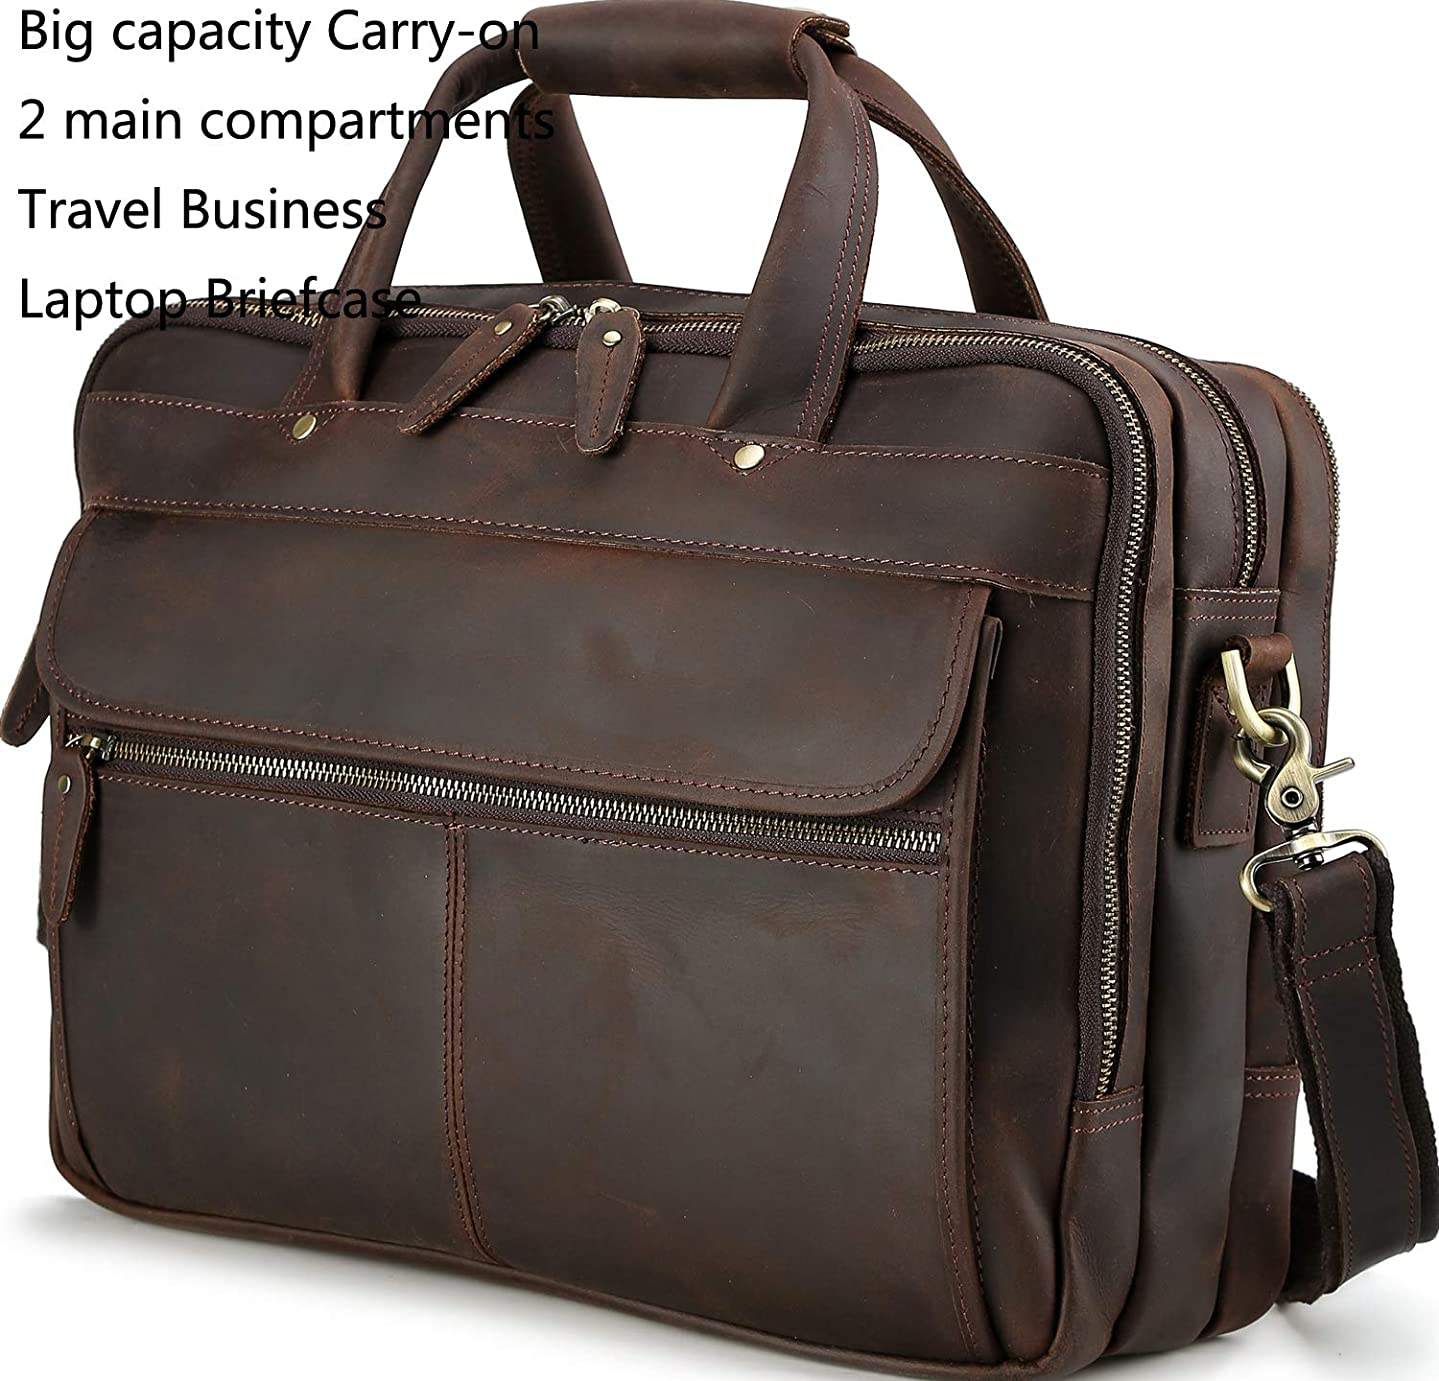 Iswee Men Vintage Thick Leather Travel Carry-on Big Capacity Business Trip Laptop Briefcase